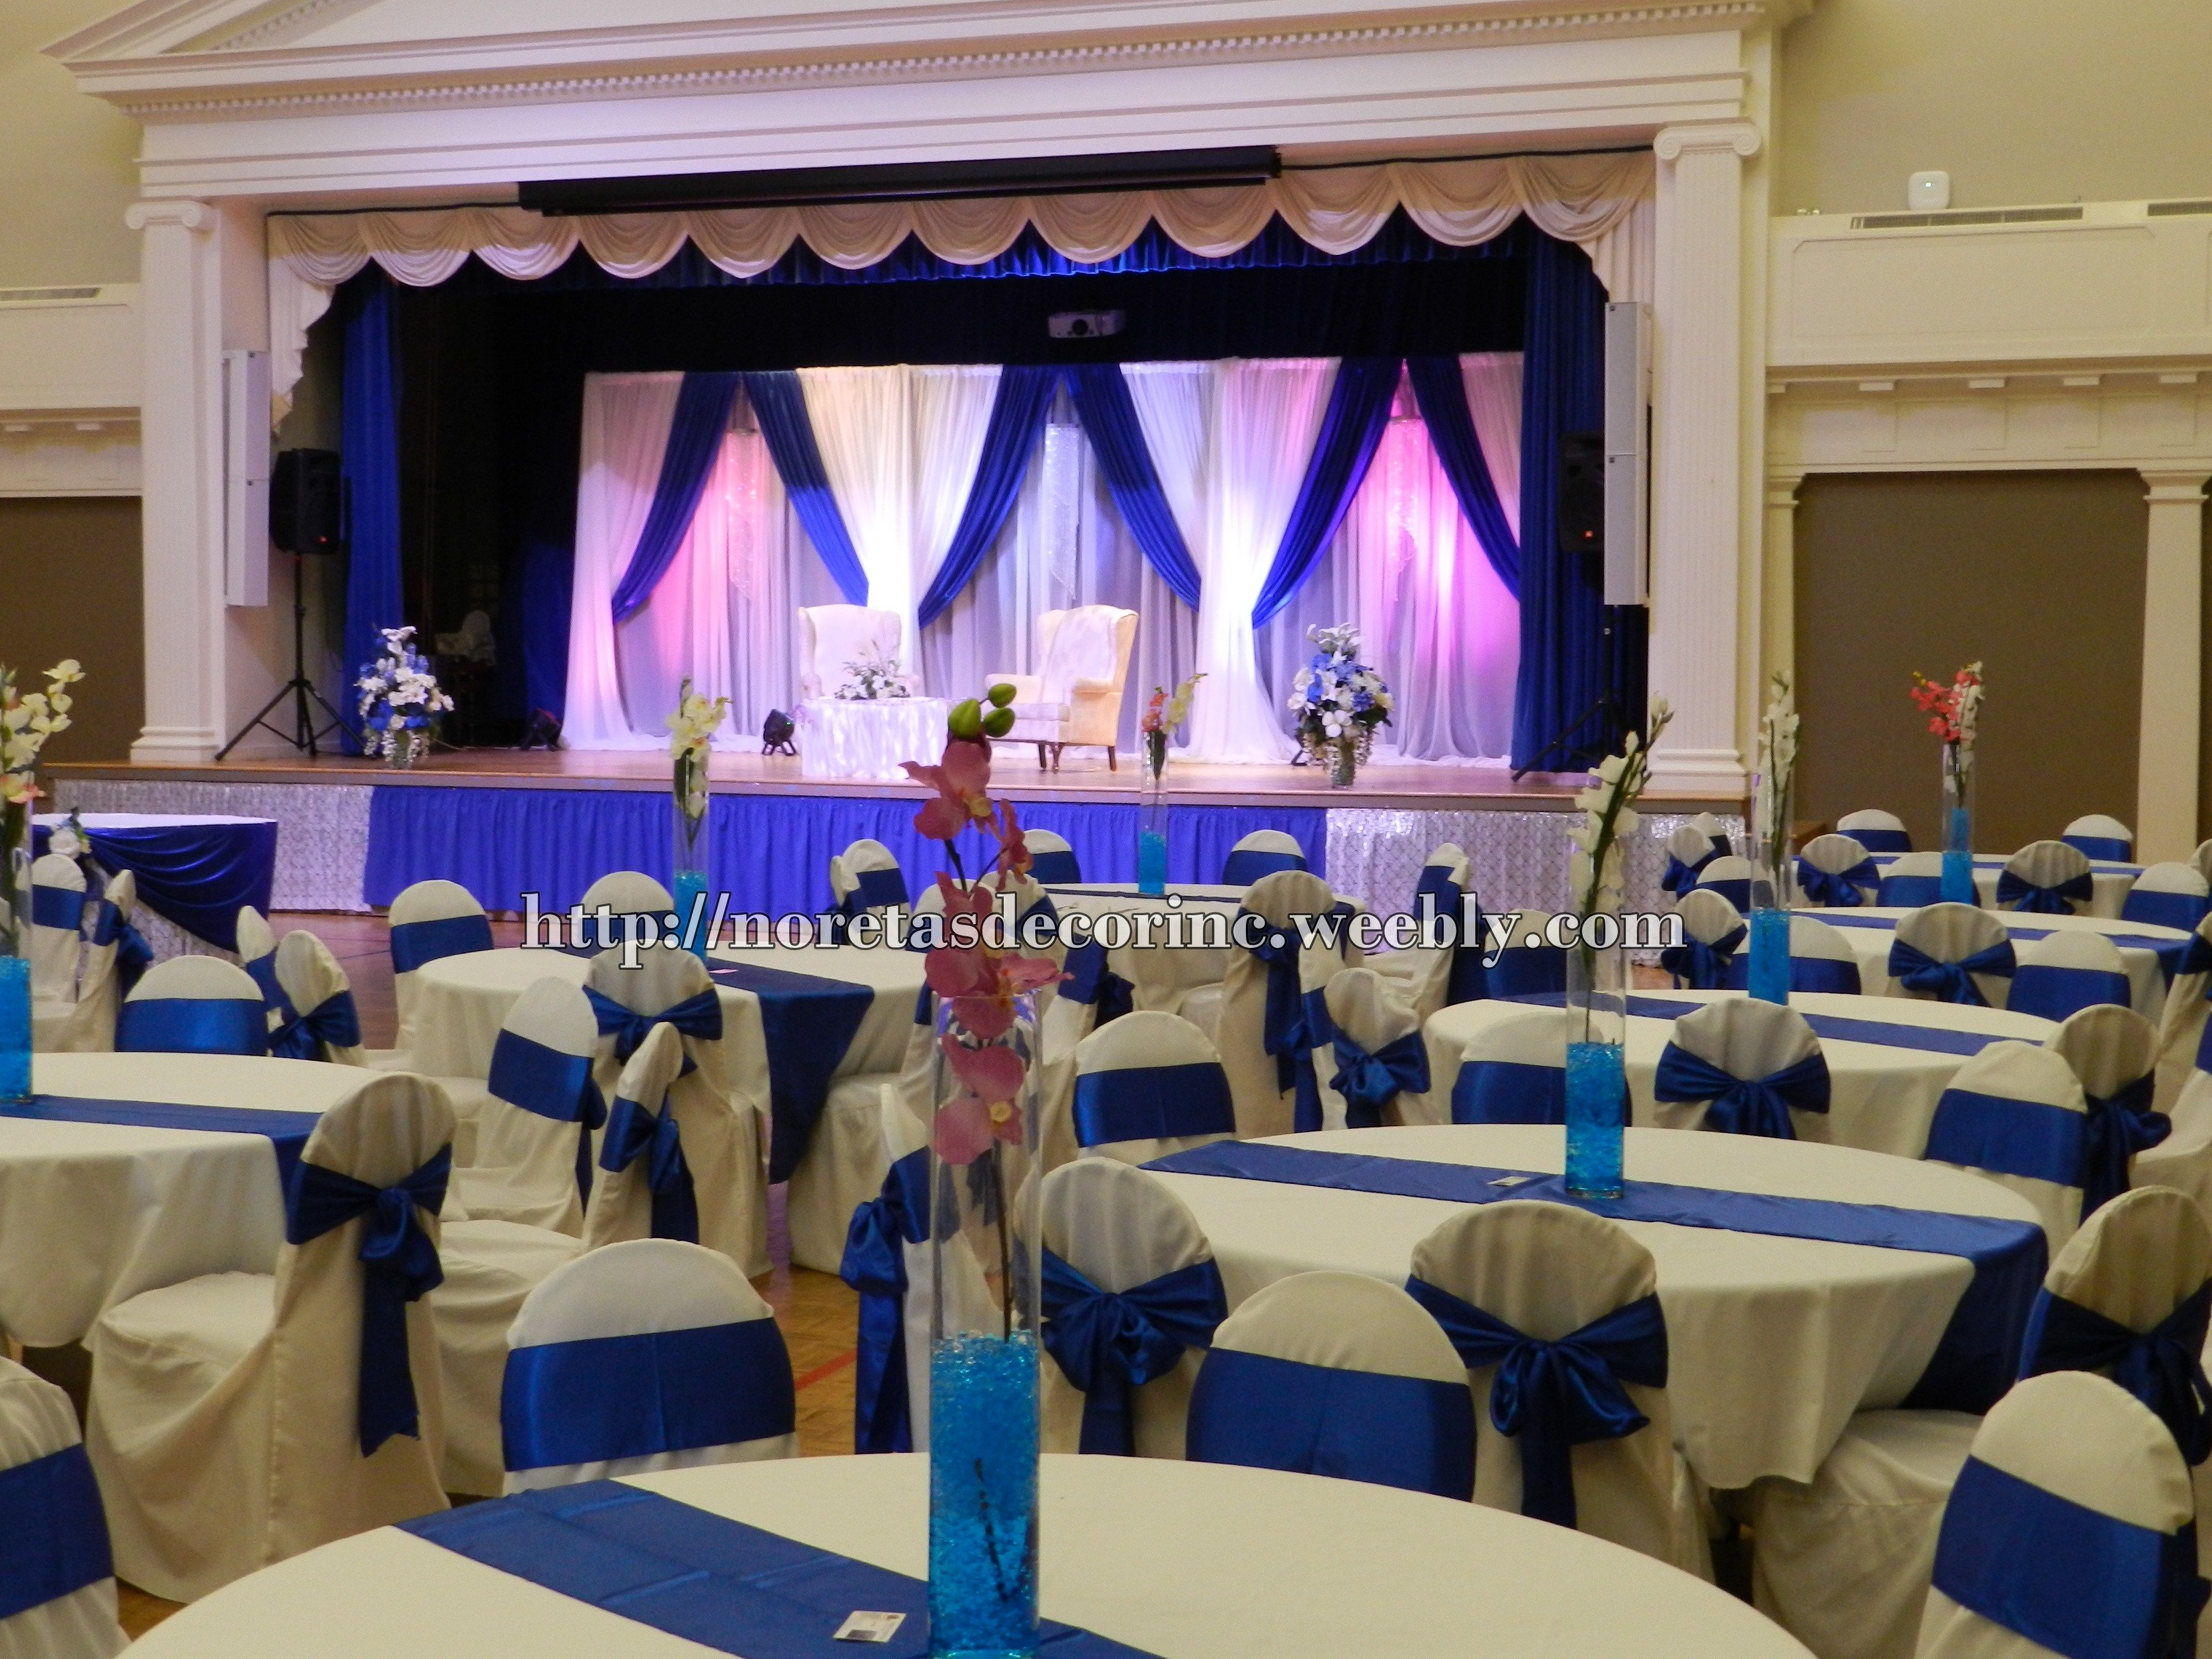 Columns ivory fabric uplighting wedding ceremony downtown double tree - Royal Blue Wedding Reception Decoration